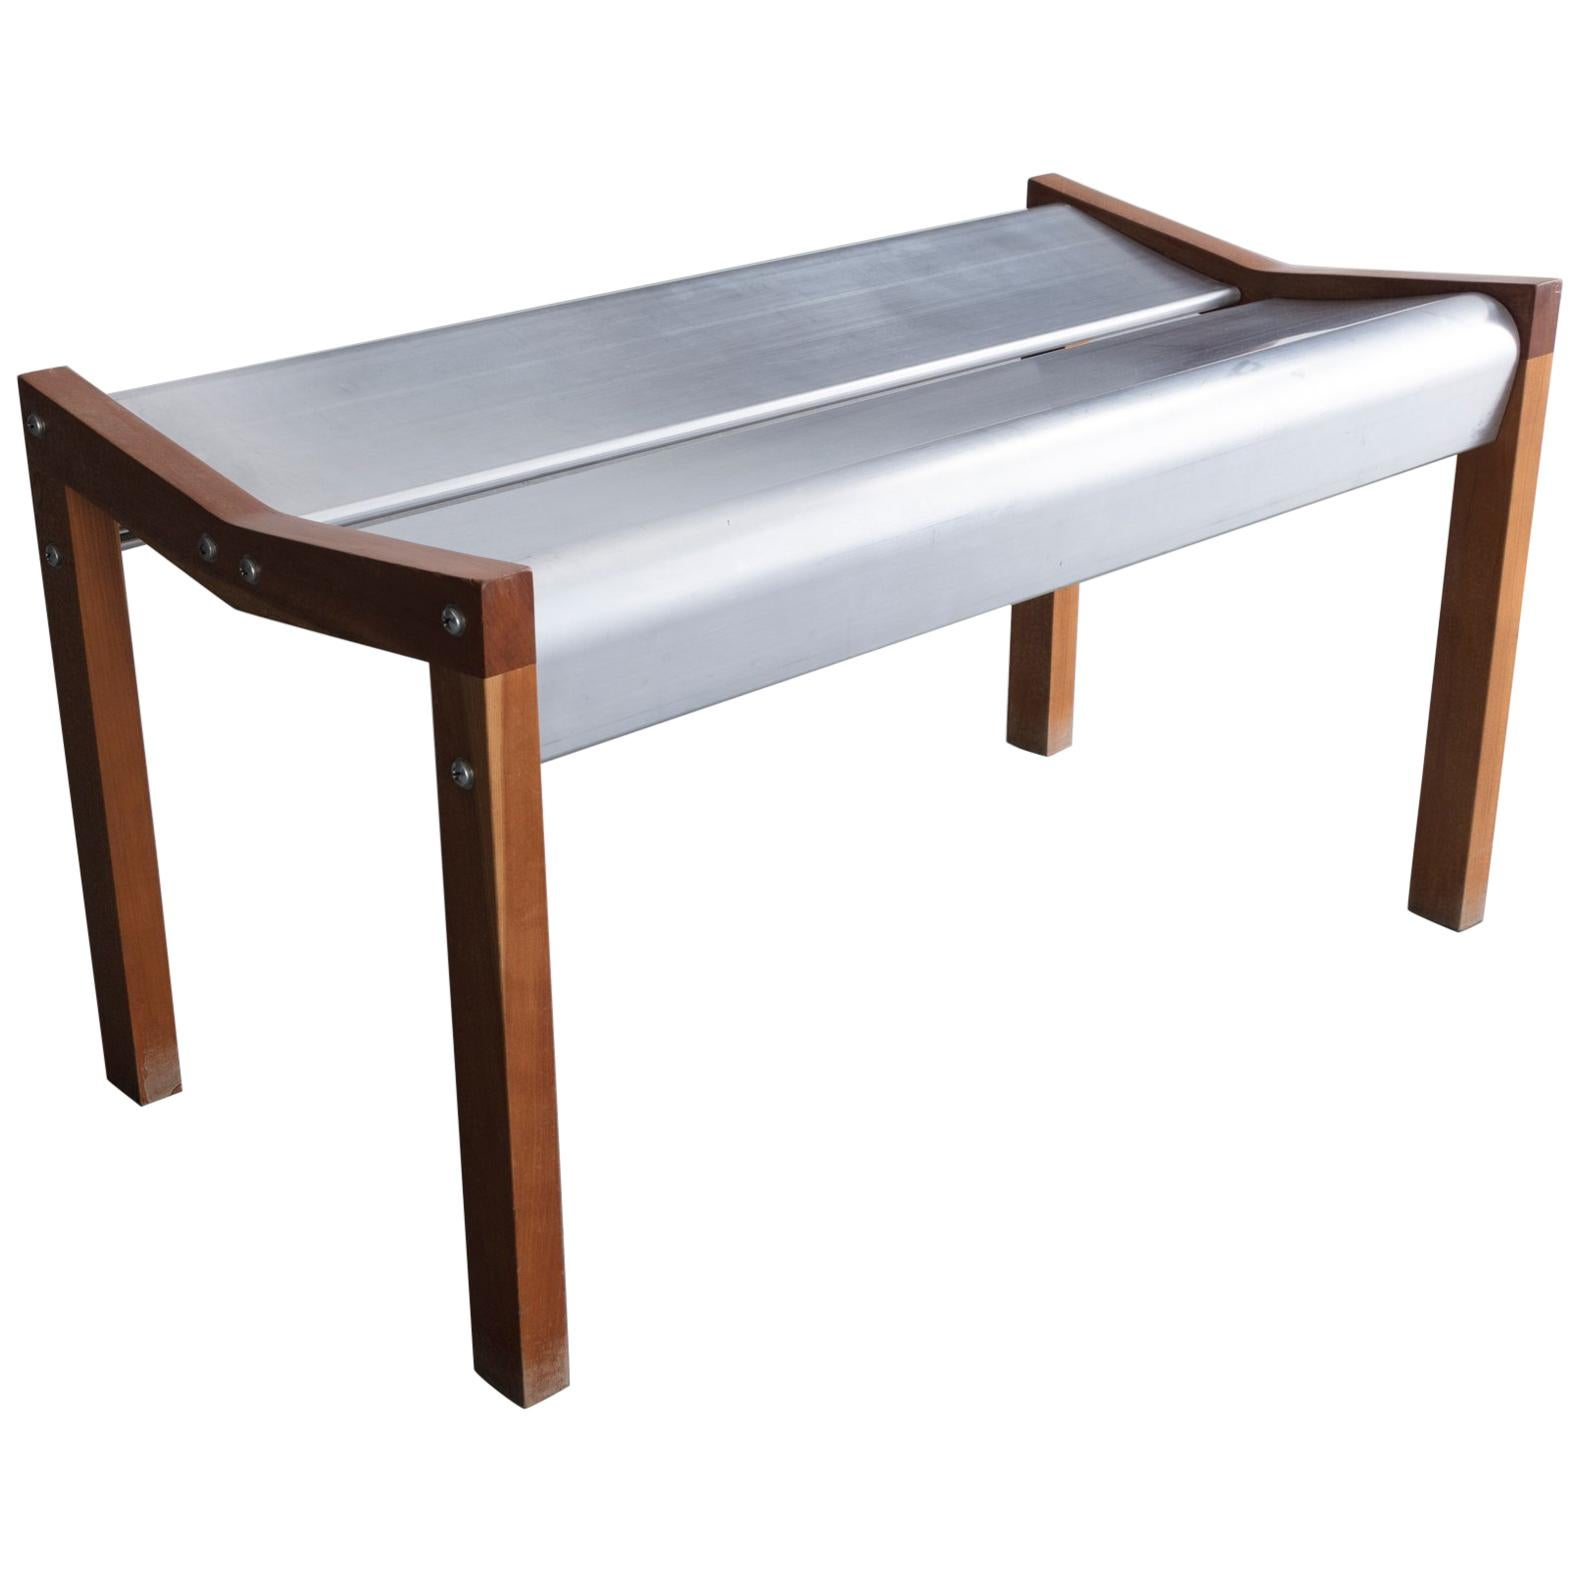 Pleasant Rasamny Bench 2 In Anondized Extruded Aluminum Dark Wood By Ali Tayar 1999 Forskolin Free Trial Chair Design Images Forskolin Free Trialorg